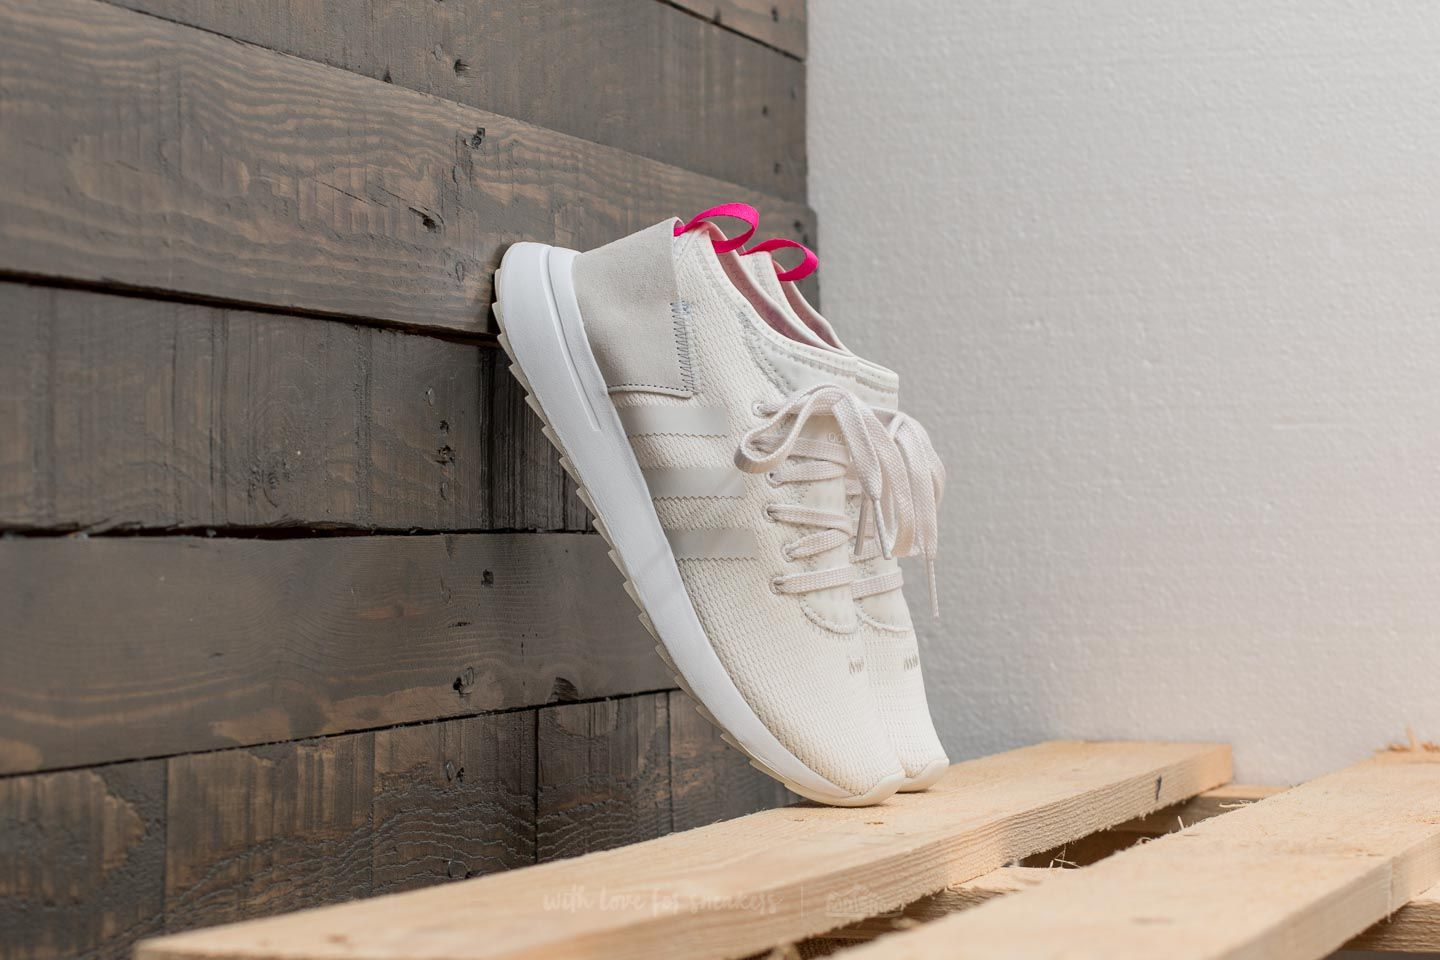 buy online 7d669 7a90d adidas FLB Mid Crystal White Crystal White Ftw White